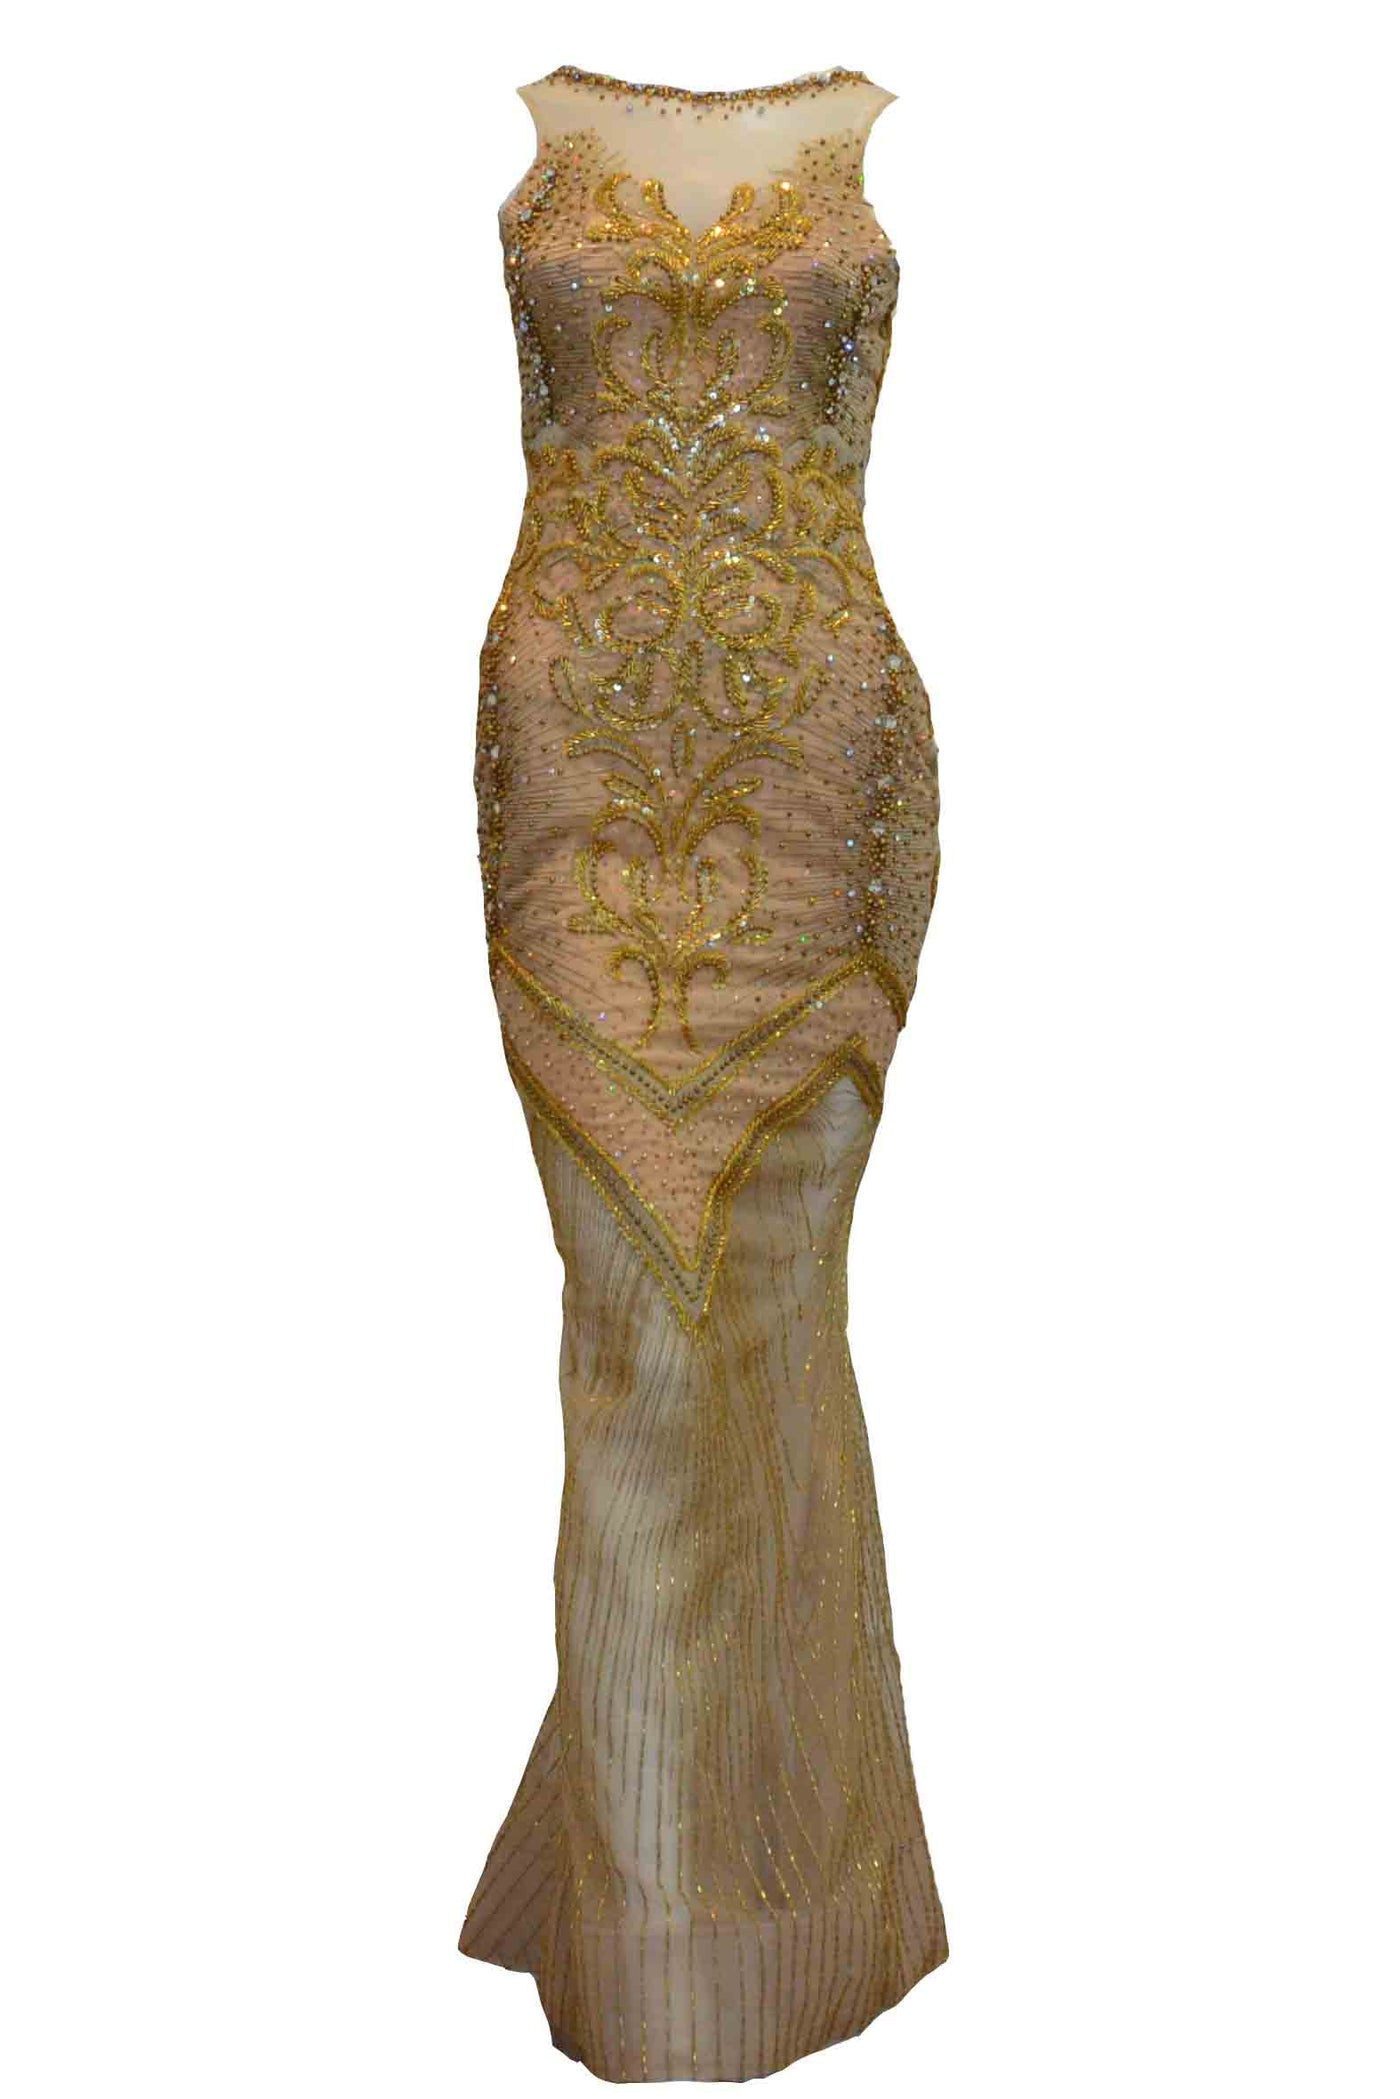 Rent : Eko Tjandra - Gold Beaded Mermaid Gown